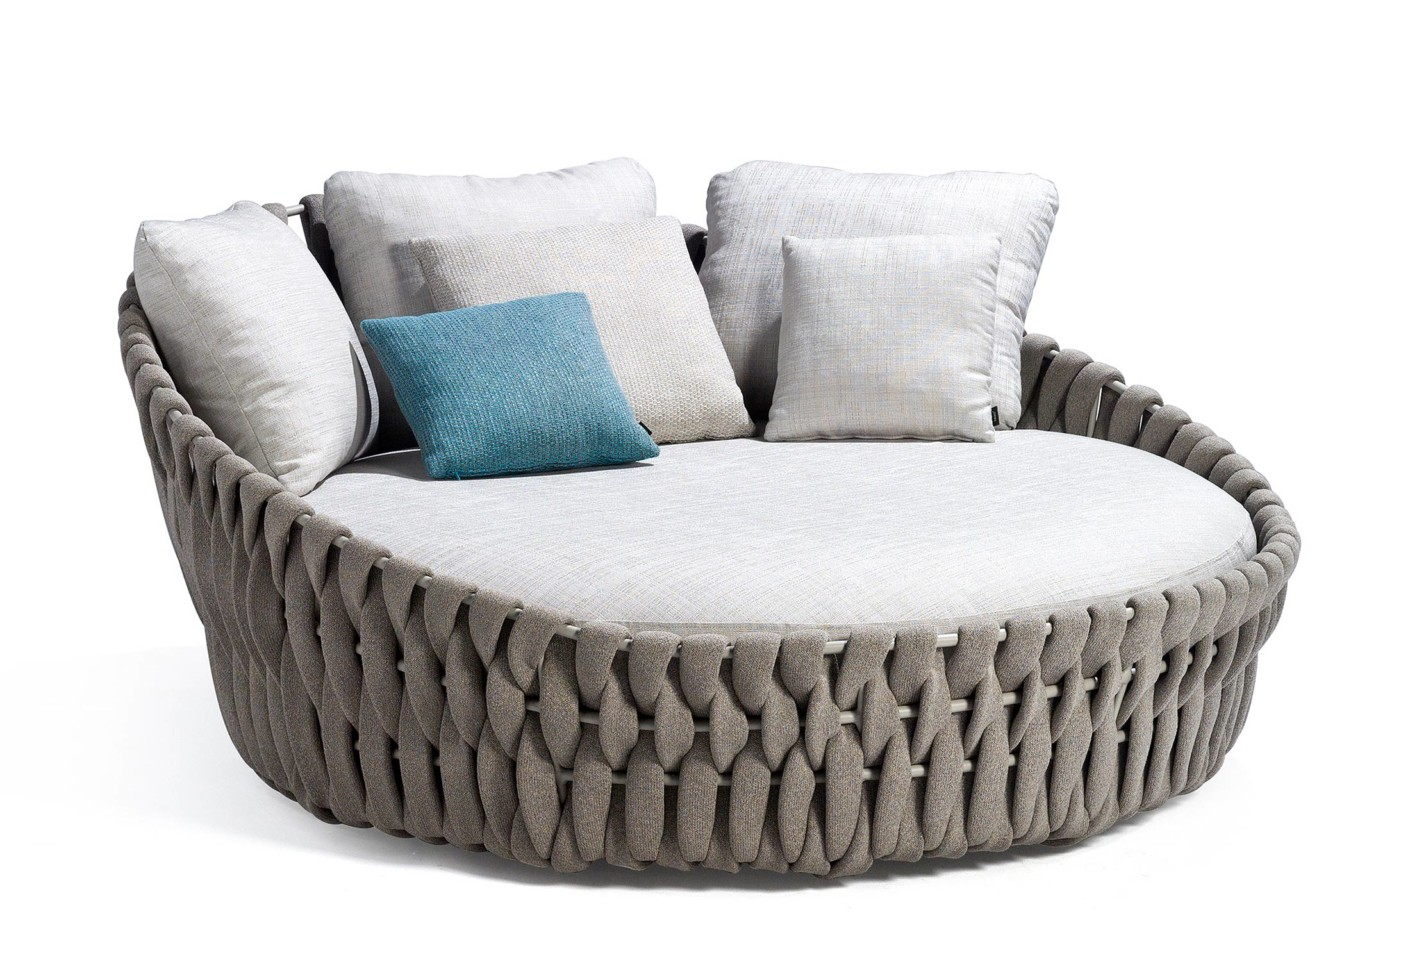 Tosca Daybed Deco By Trib 249 Stylepark